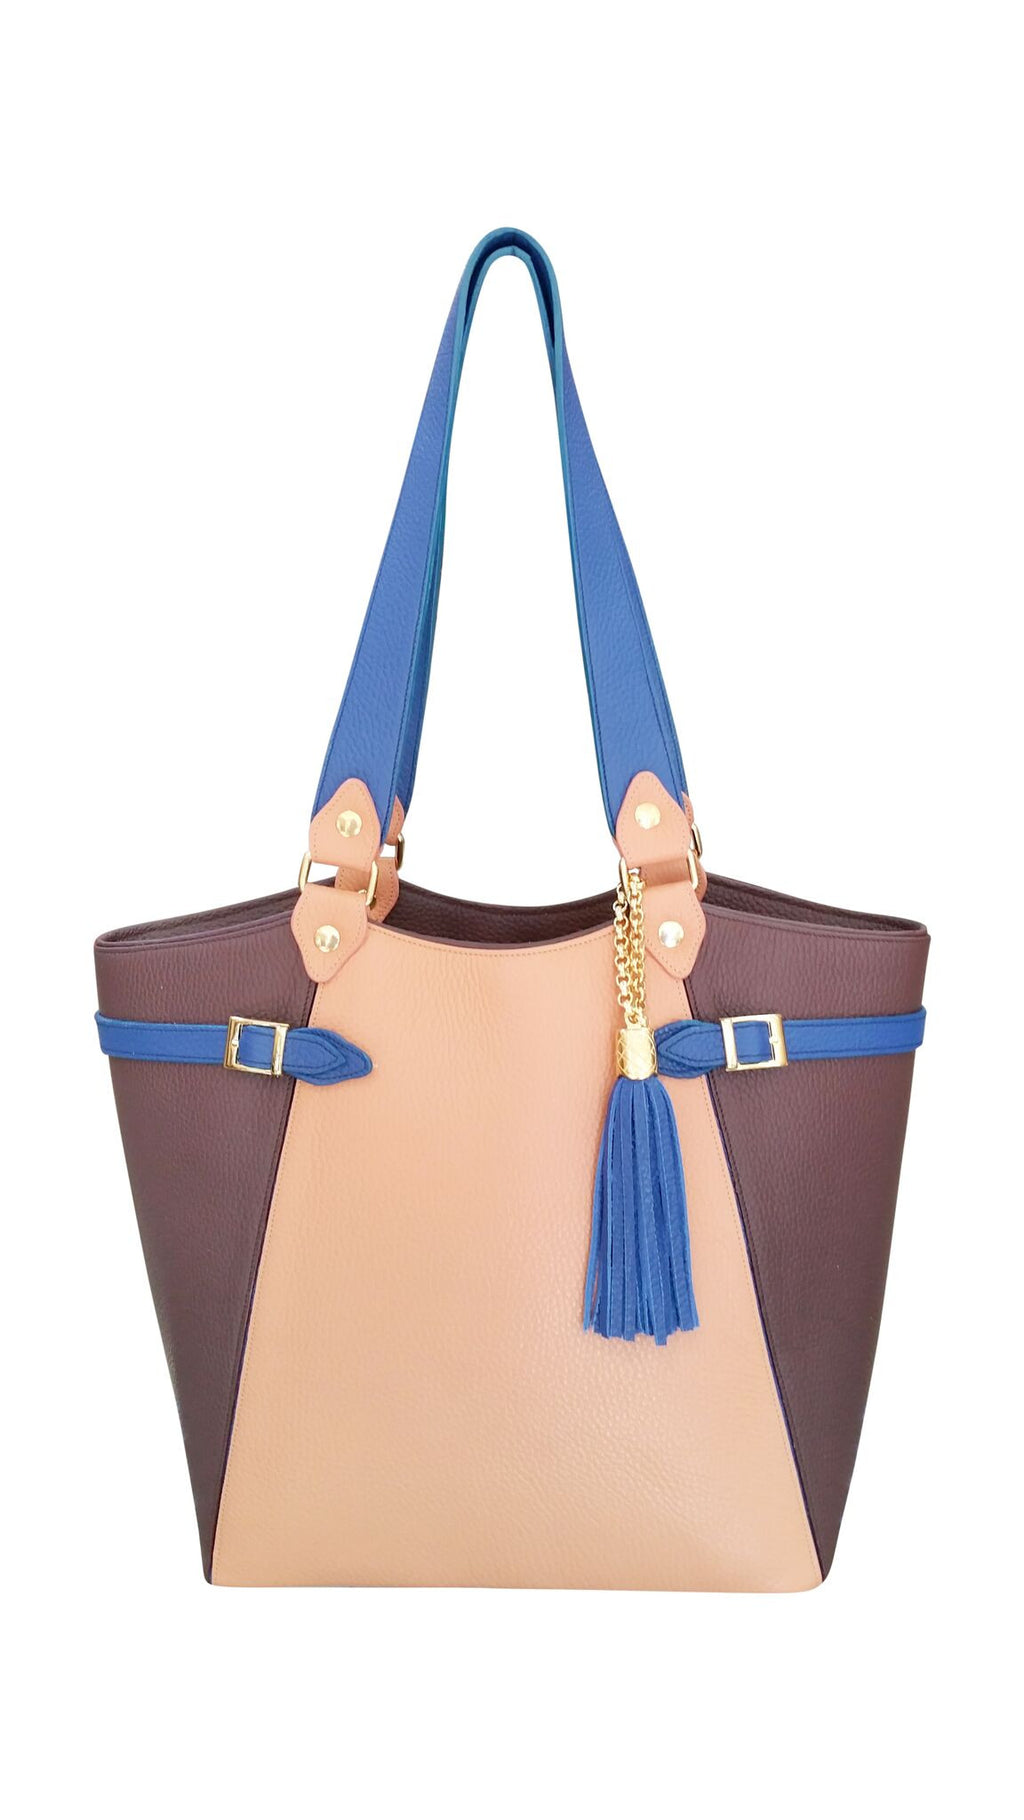 DBR Evelyn Tote Bag